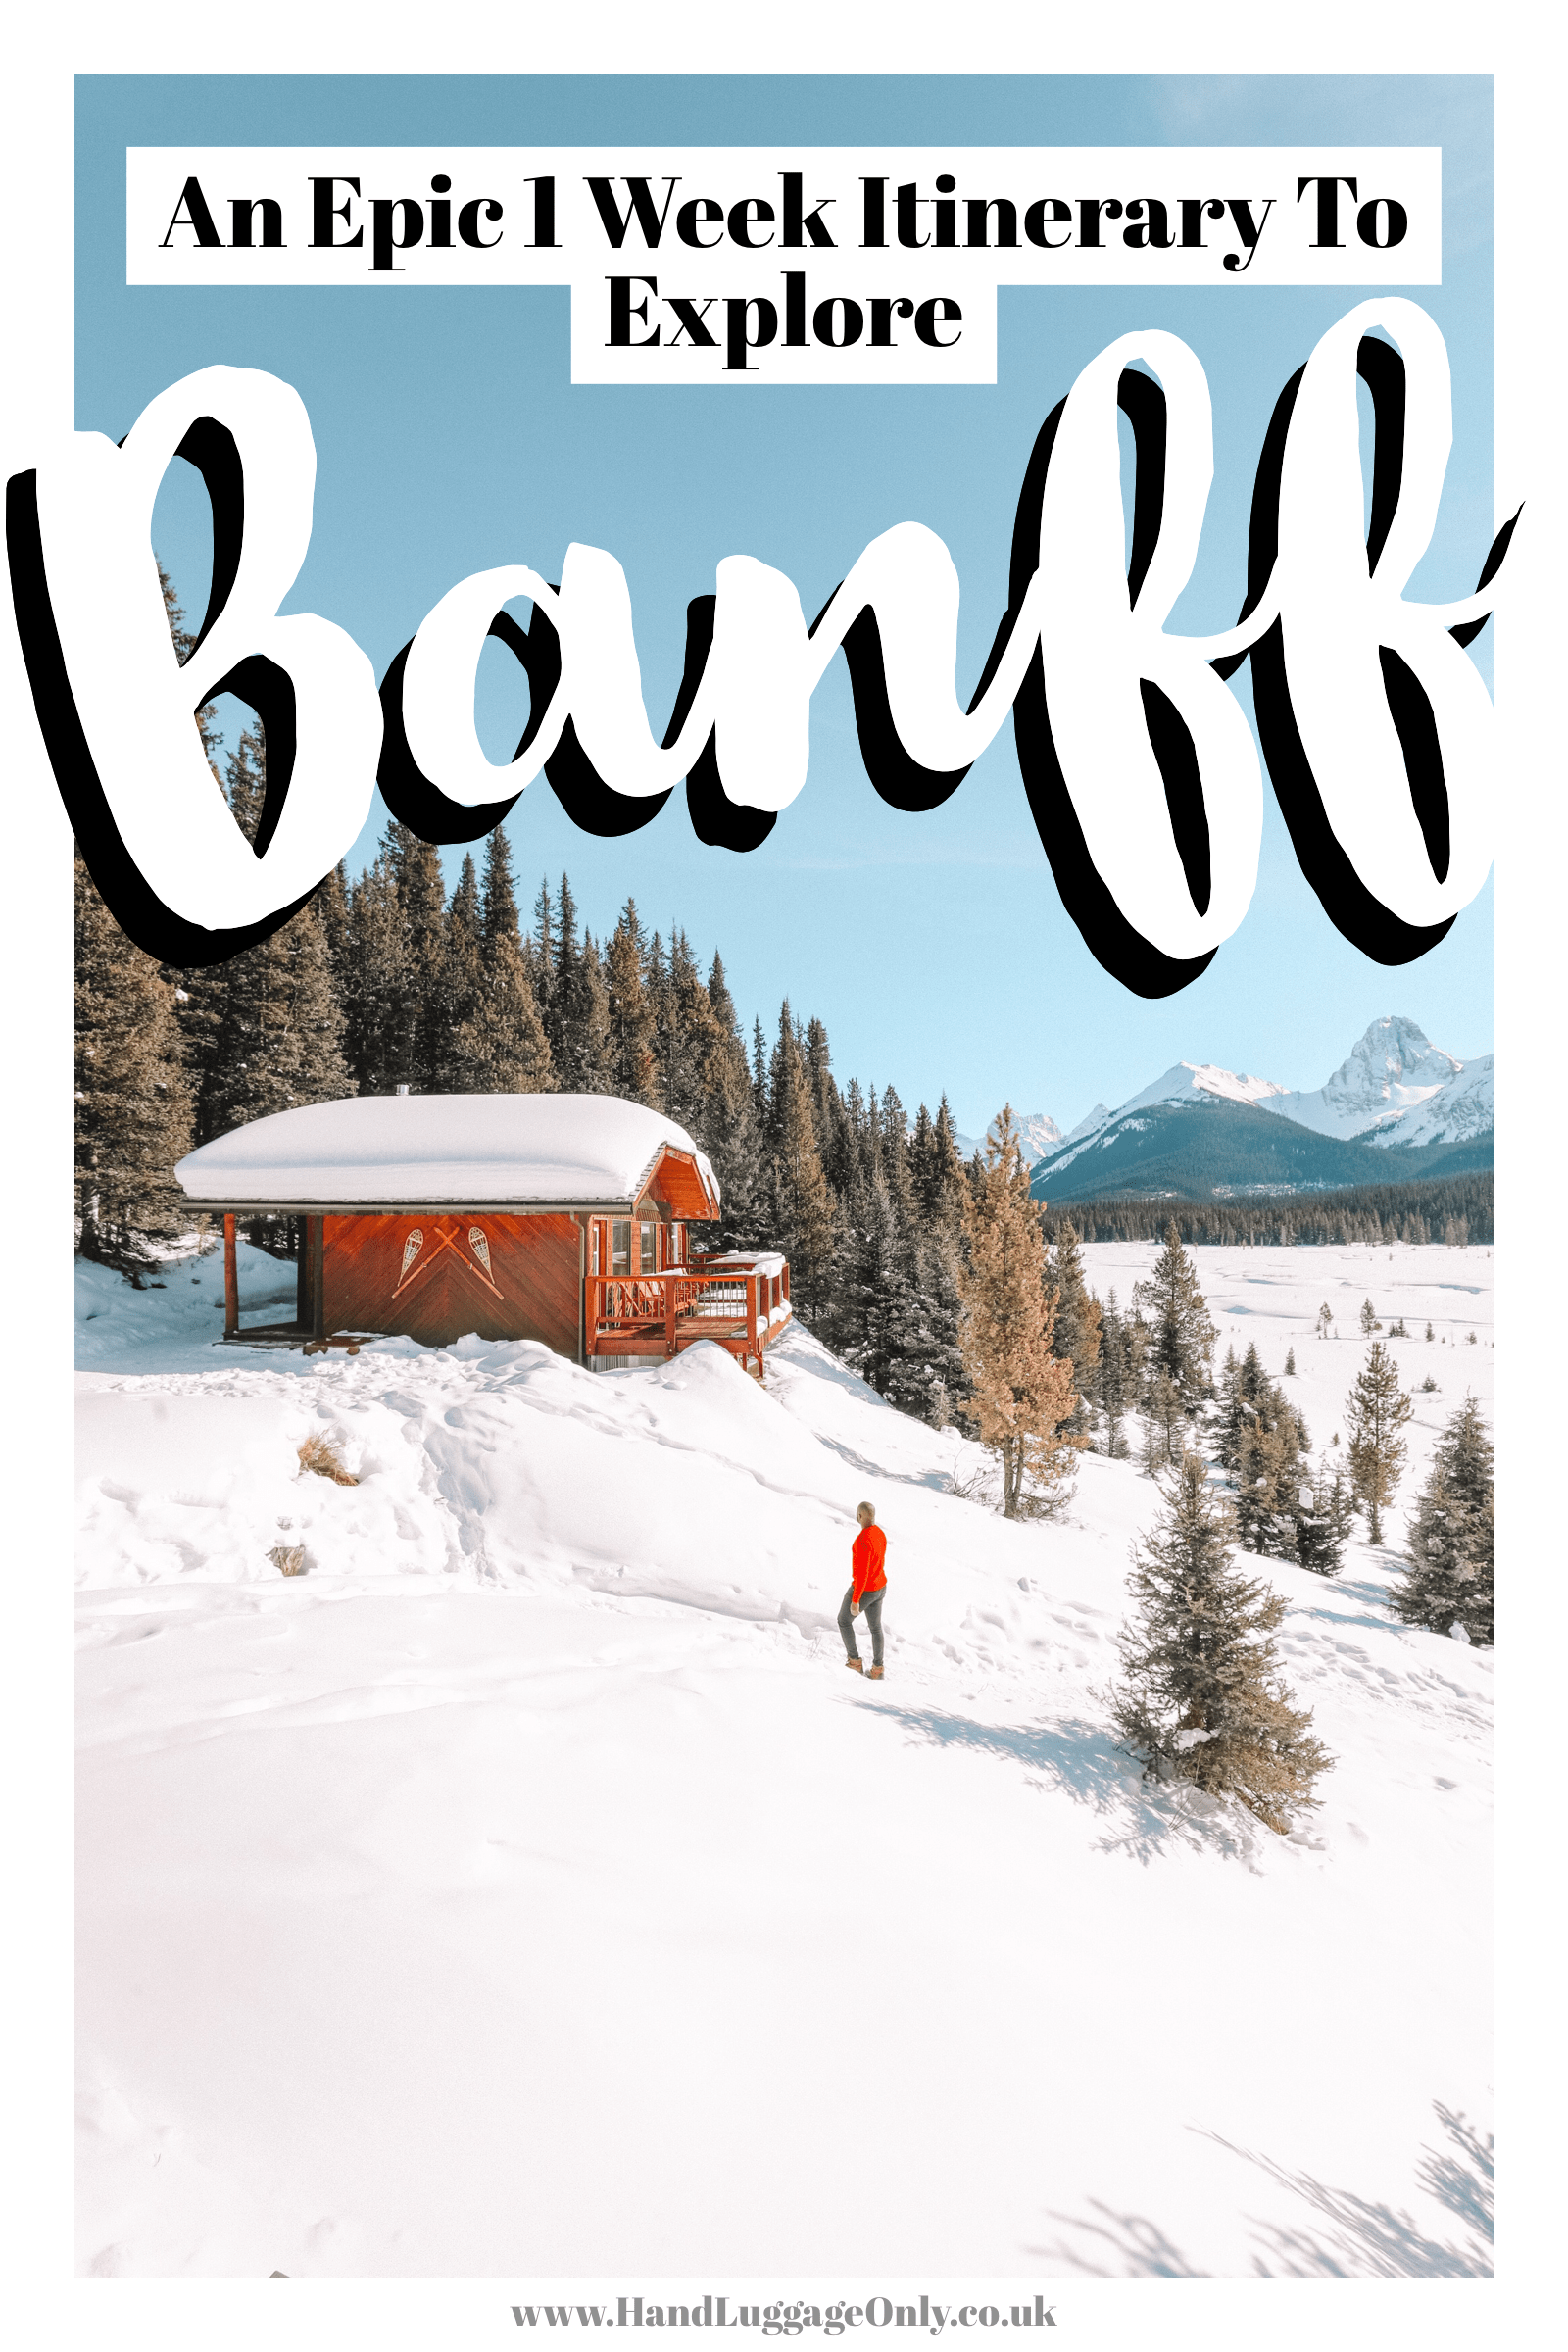 An Epic 1-Week Banff Itinerary In Winter (And Surroundings)